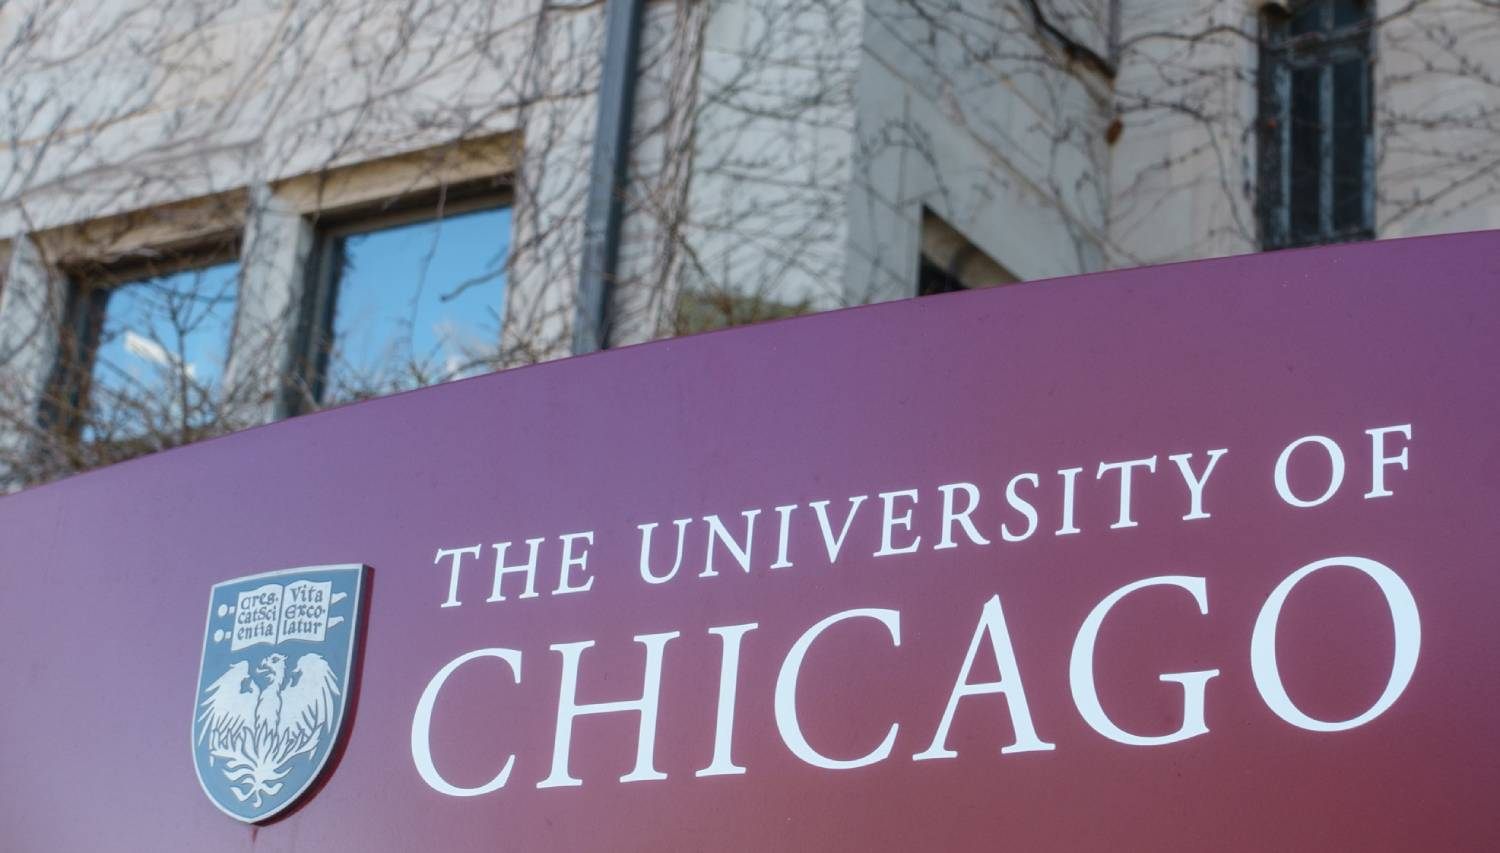 University of Chicago - Things To Do In Chicago